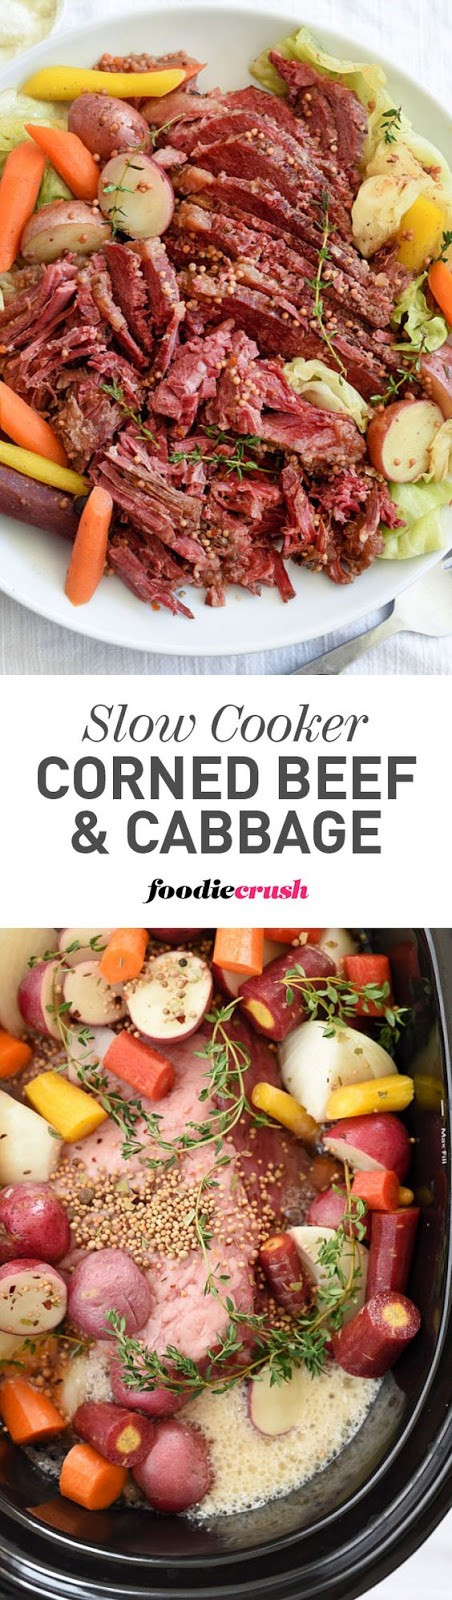 Corned Beef Recipes Slow Cooker Keto  slow cooker corned beef Keto Dinner Recipes